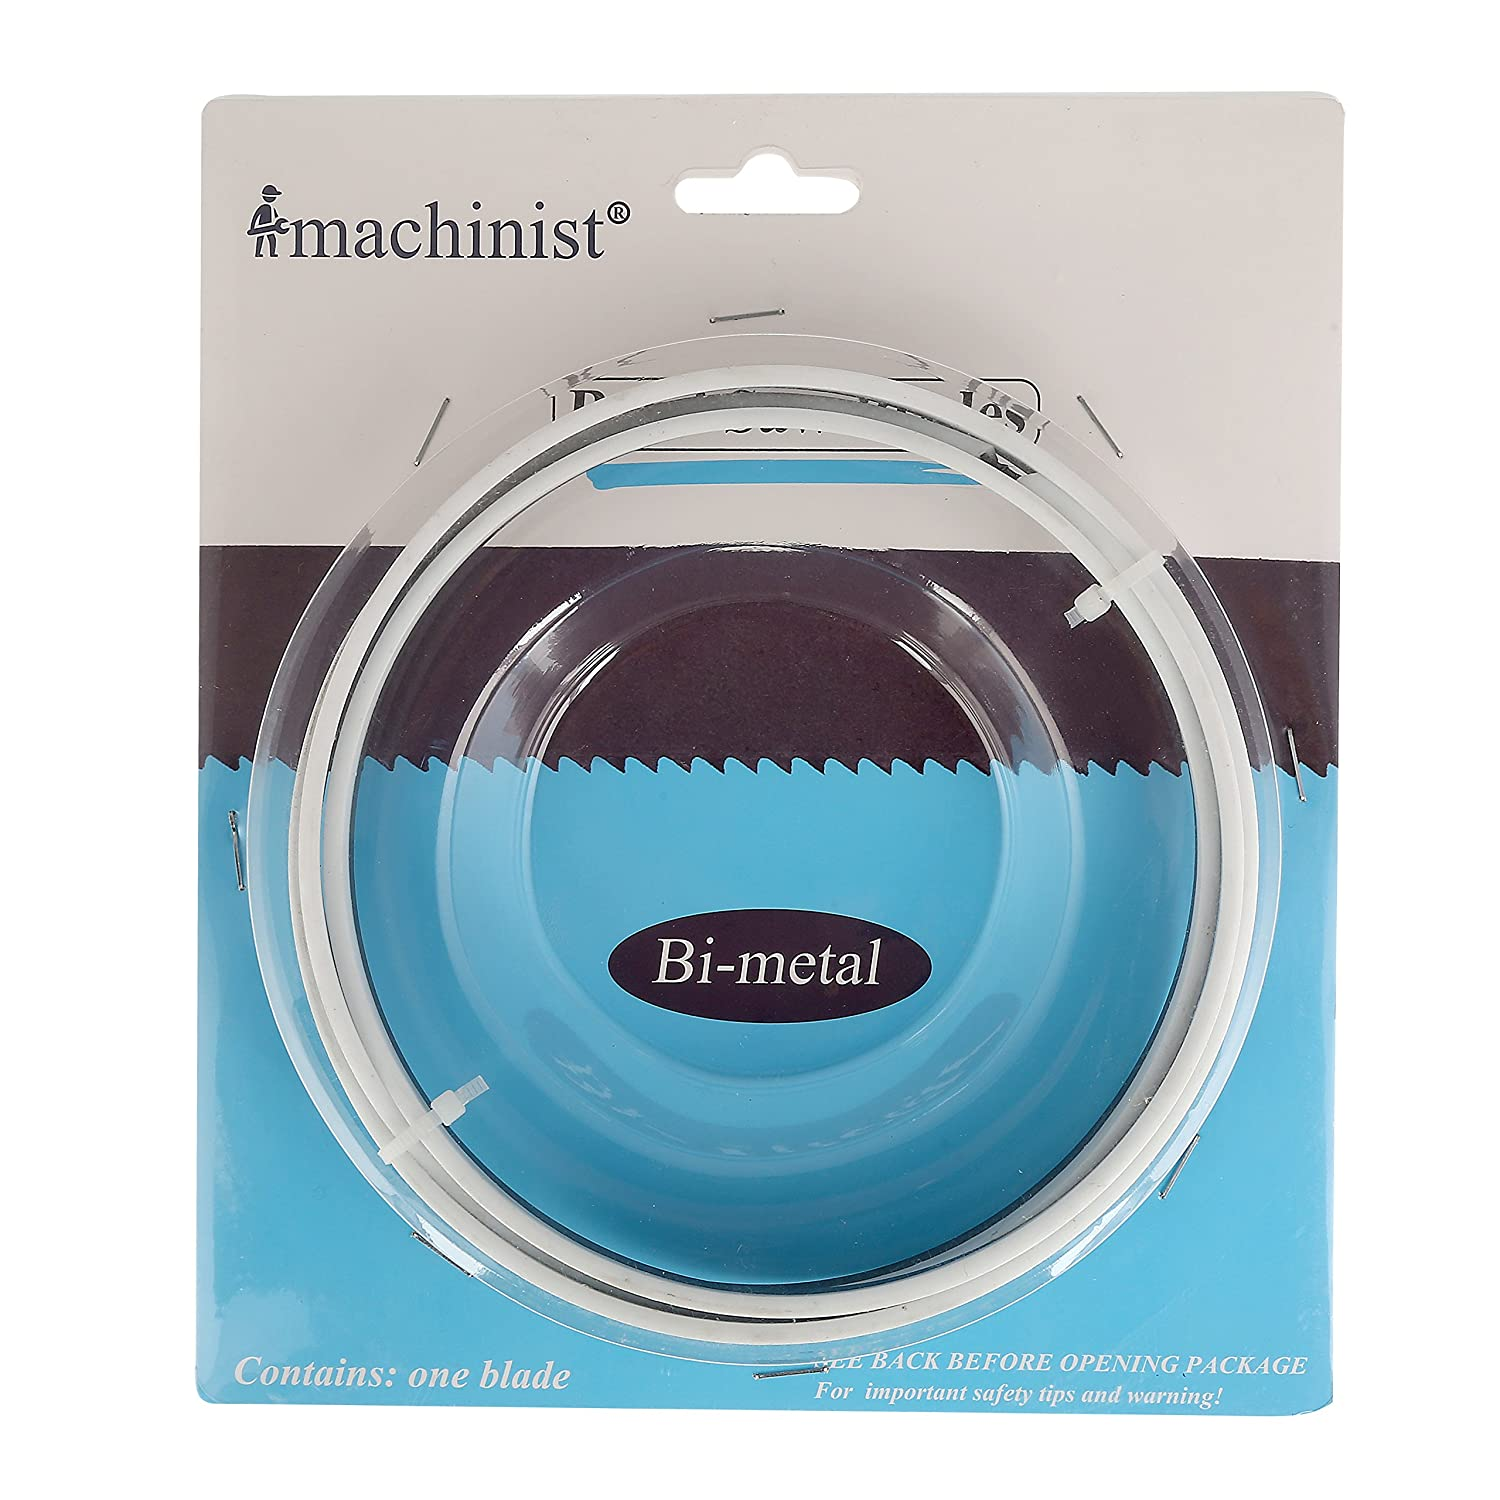 Imachinist S561214 M42 56-1/2-inch By 1/2-inch By 14tpi Bi-metal Bandsaw Blades Metal Cutting